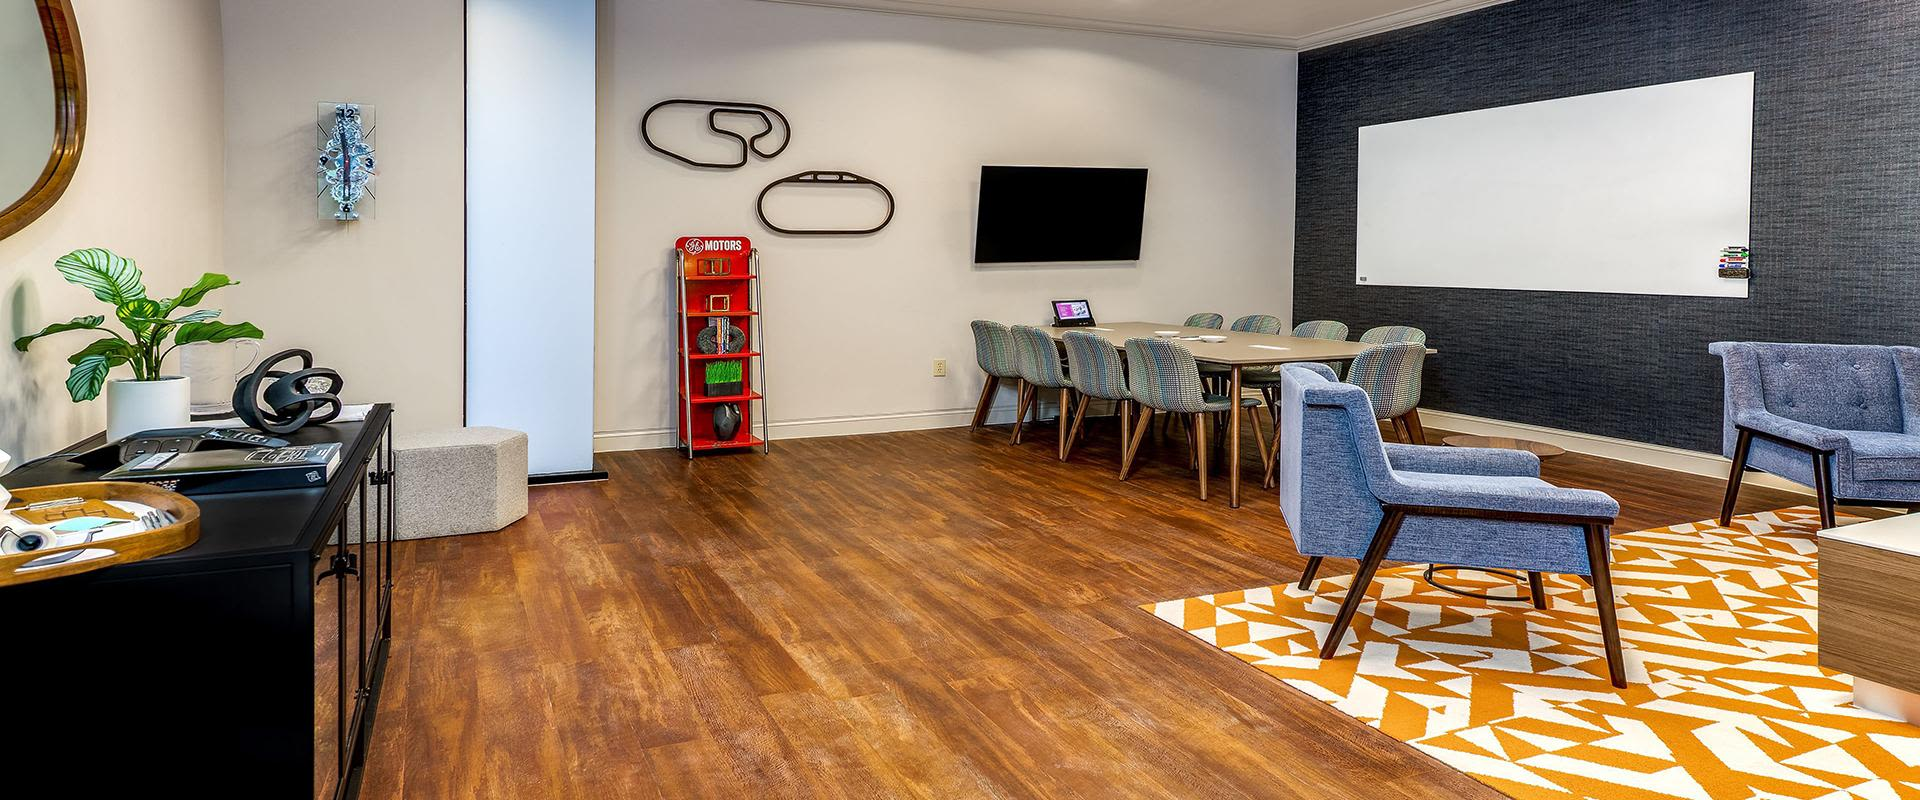 Collaborative Hotel Work Space Table & Chairs